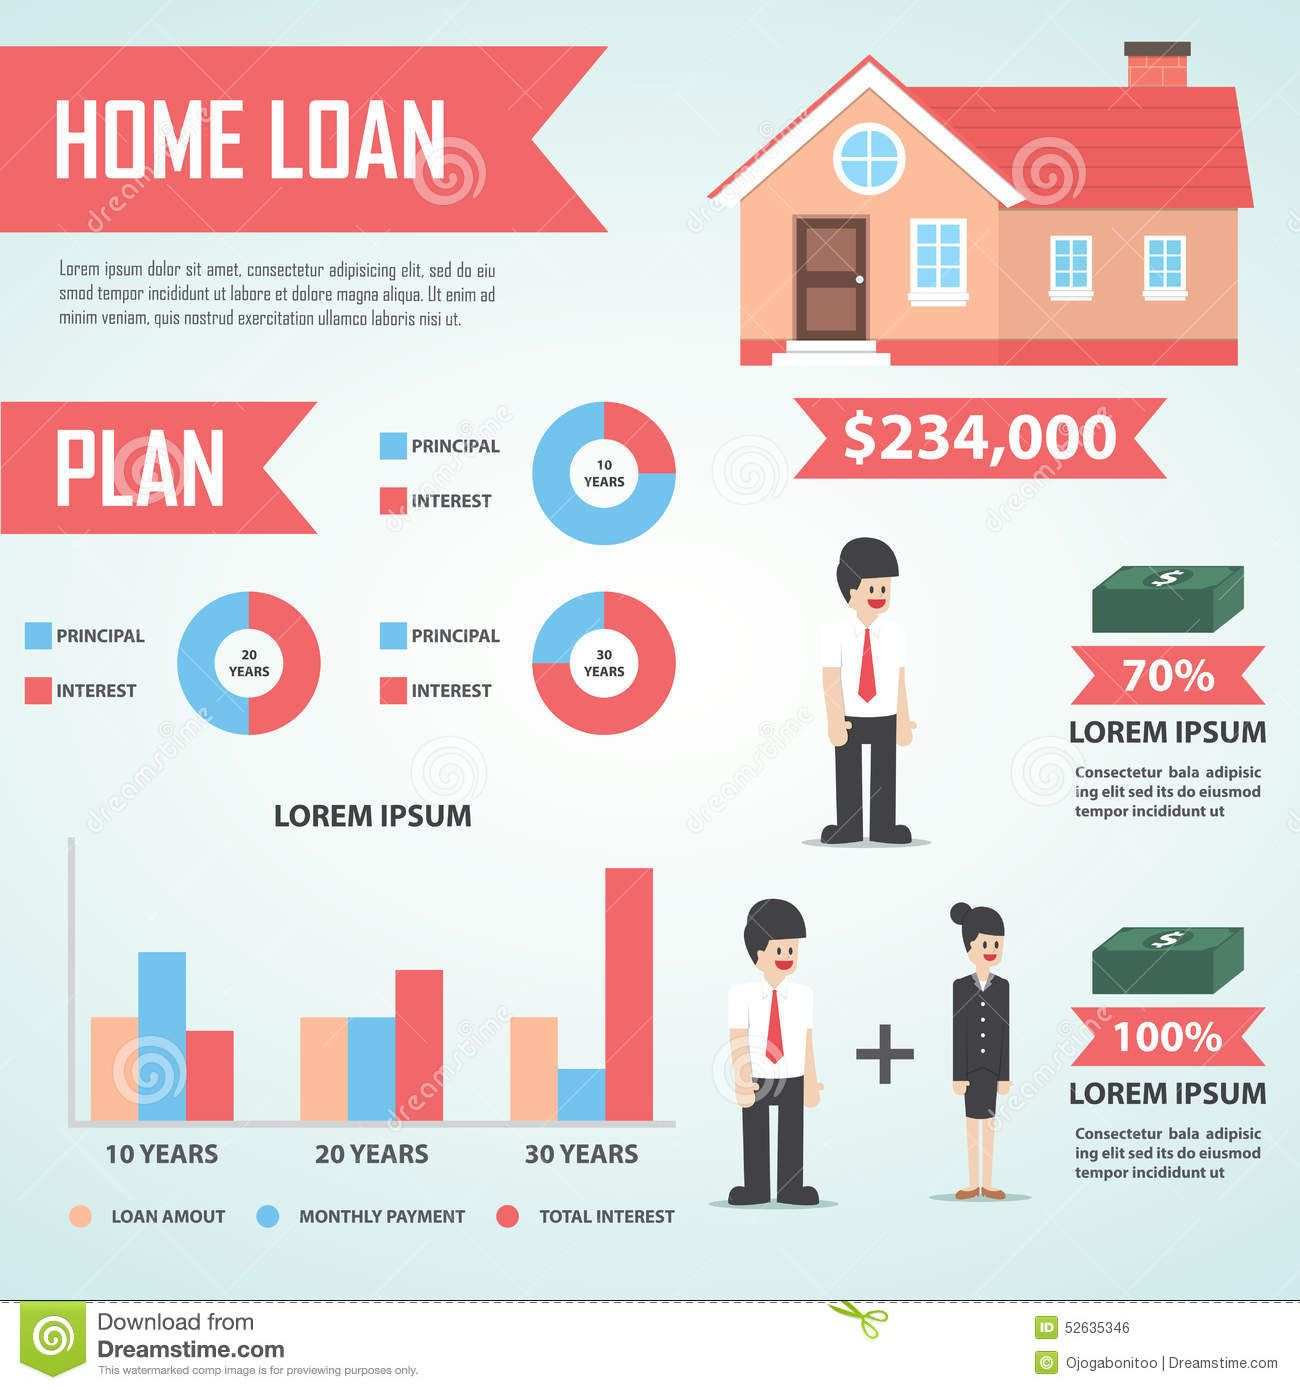 Home Loan Infographic Design Element Real Estate Stock Vector